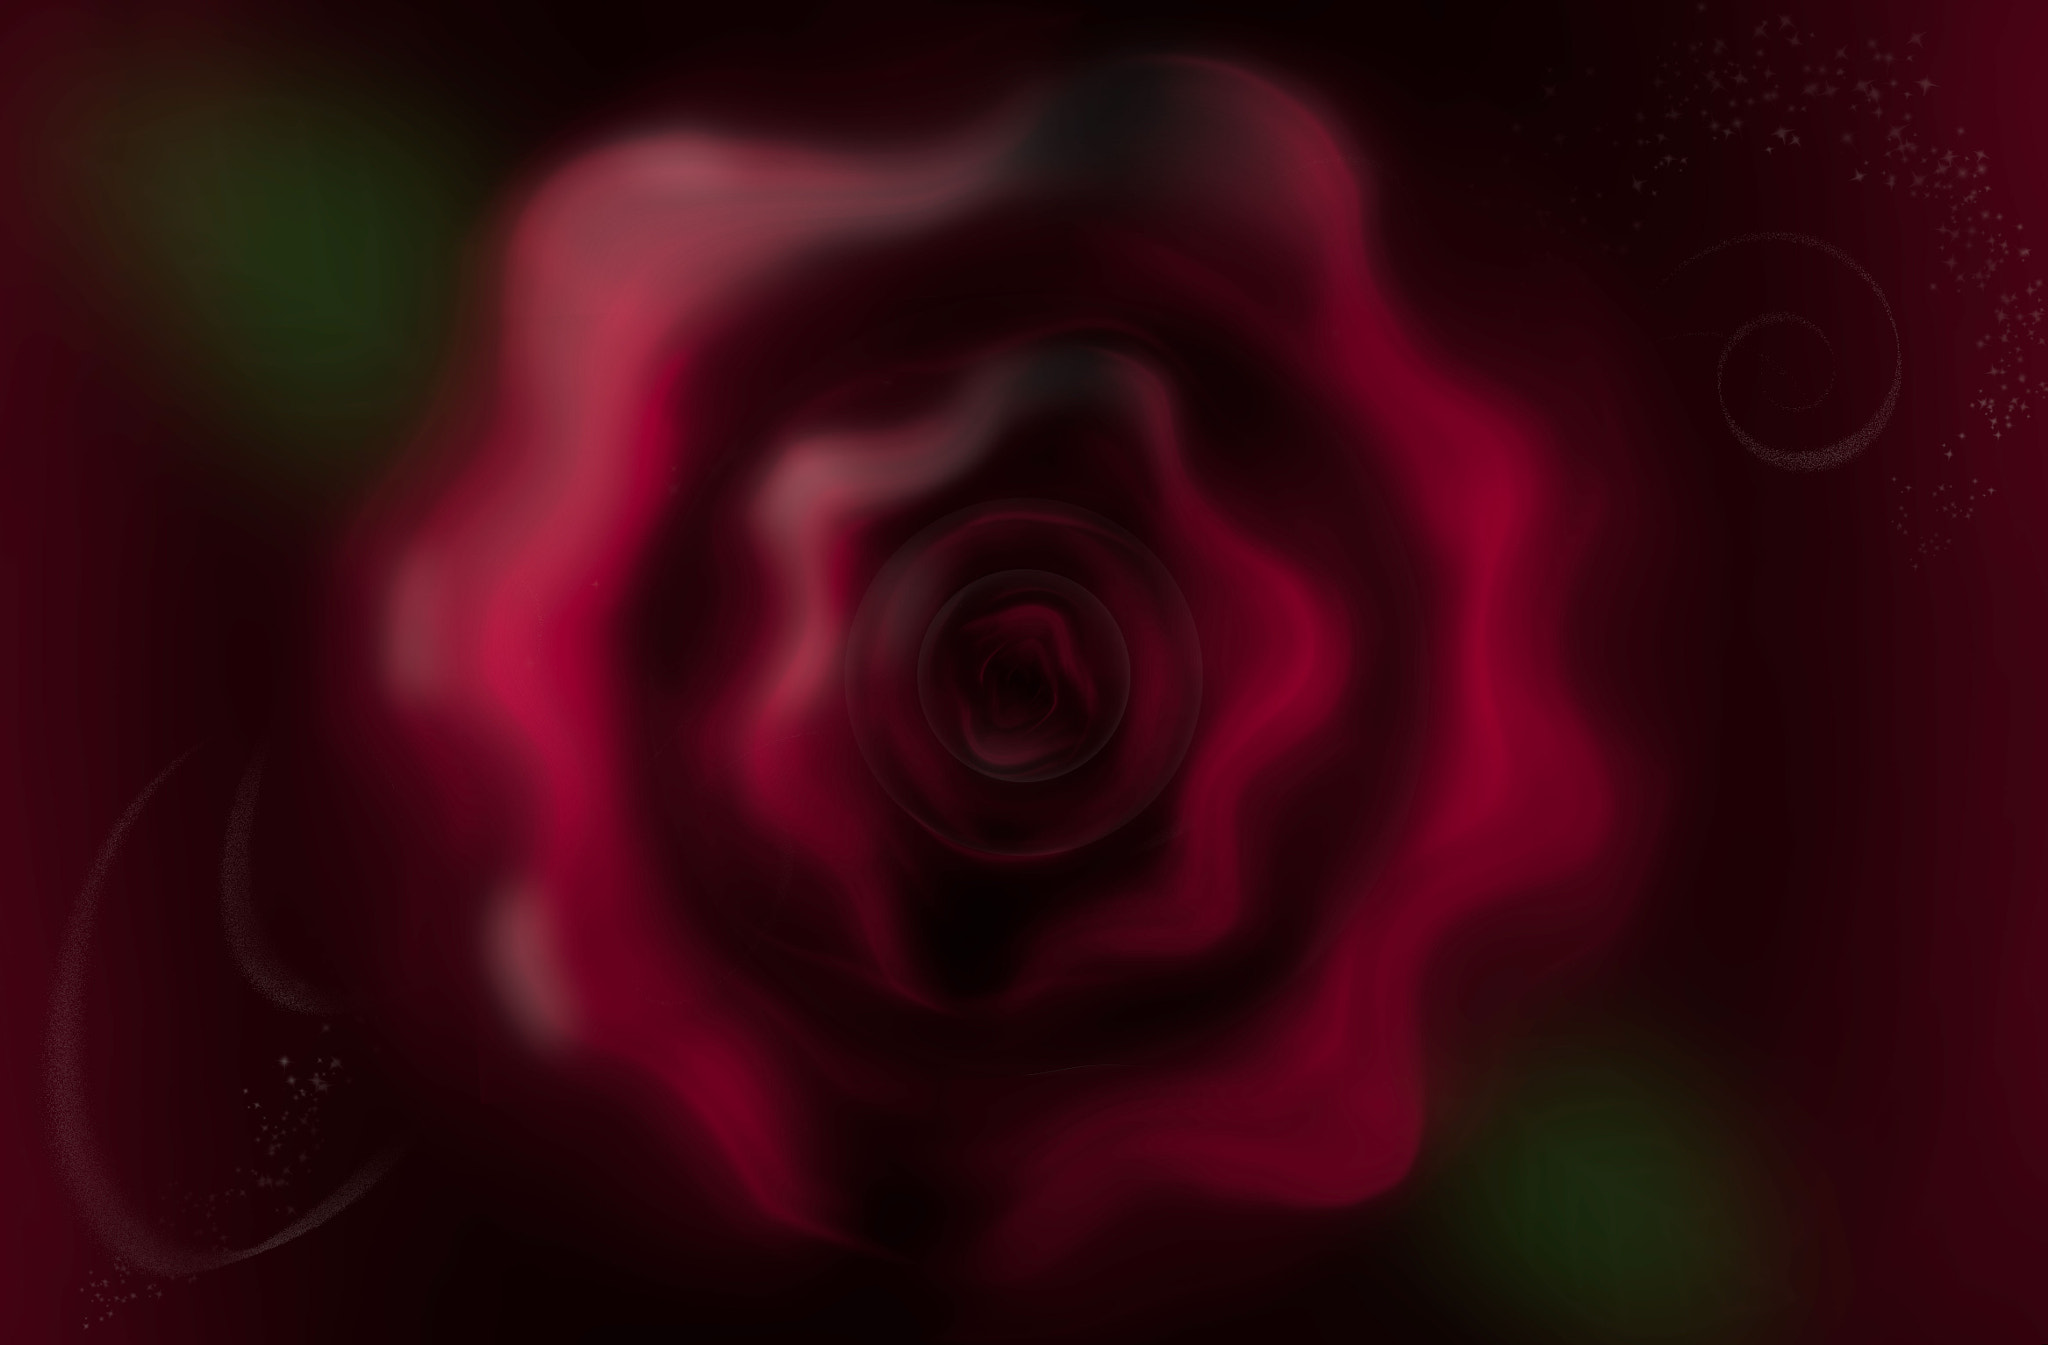 Photograph The Rose by Stanley Azzopardi on 500px